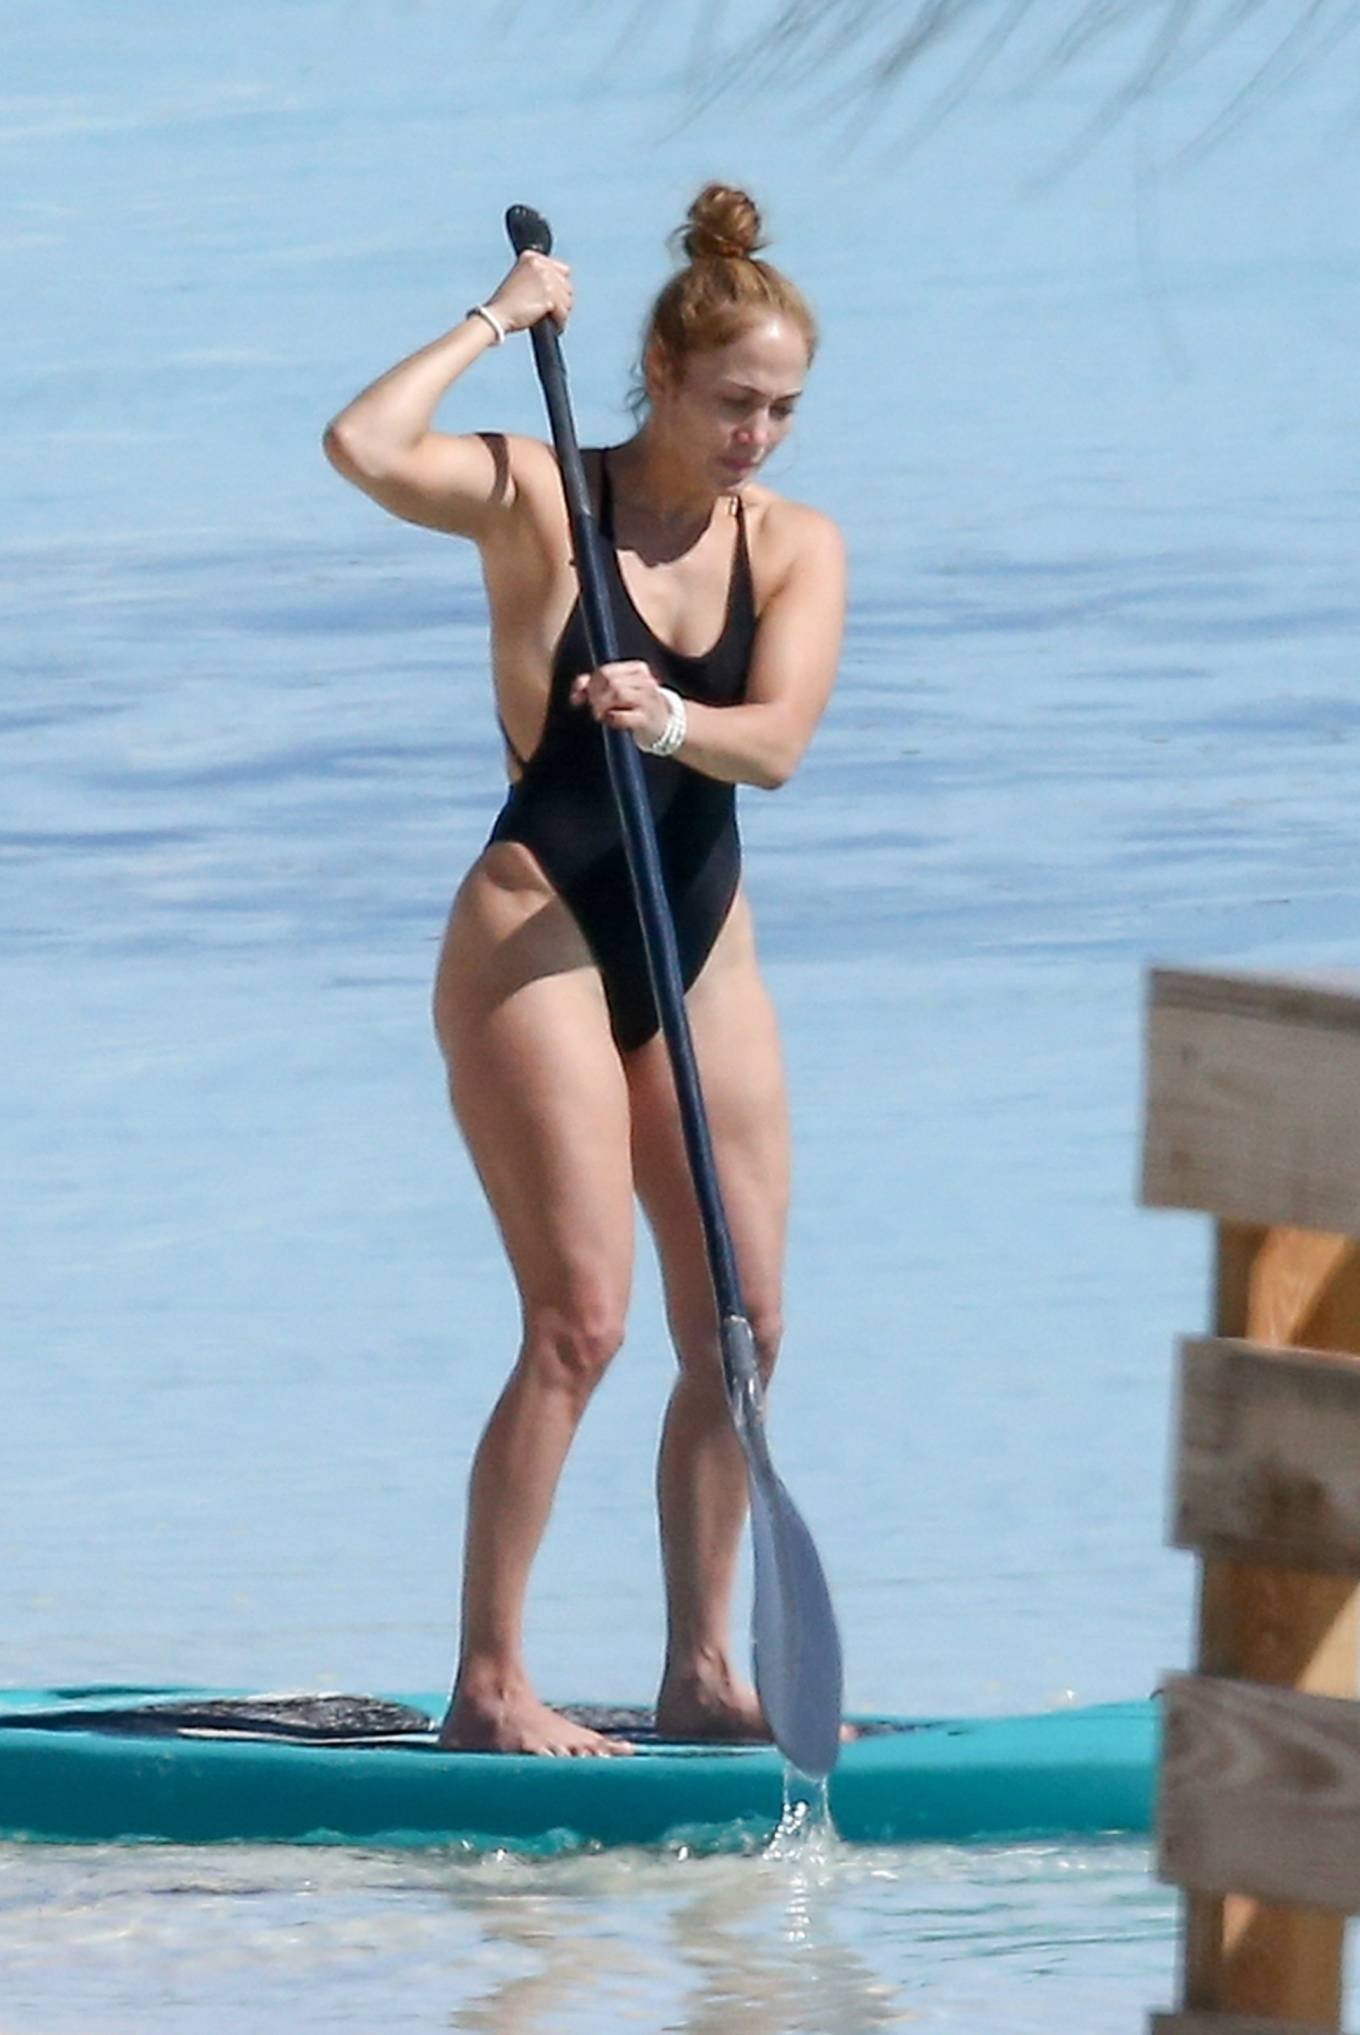 Jennifer Lopez - Paddle boarding at a beach in Turks and Caicos